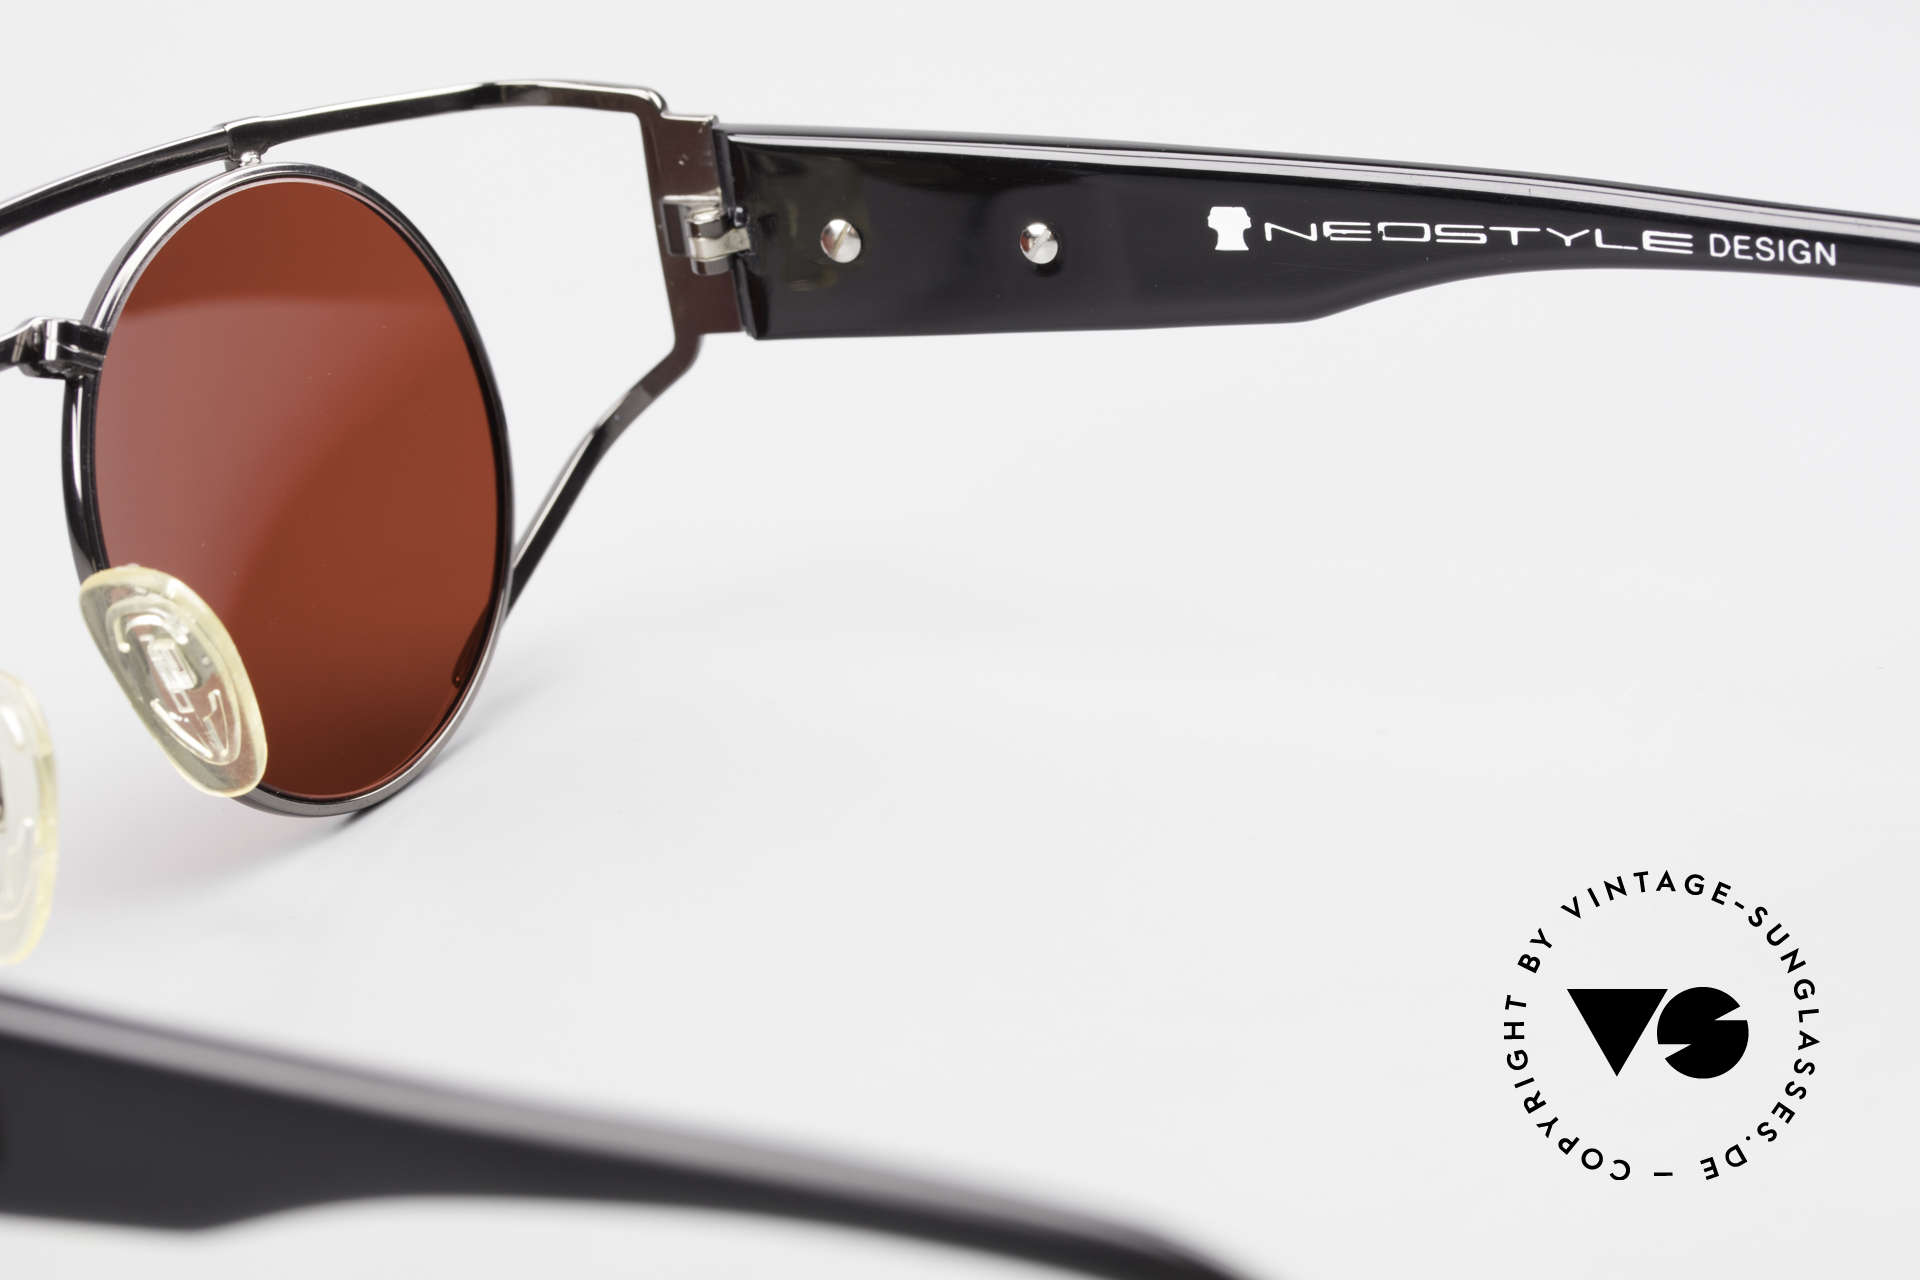 Neostyle Superstar 1 Steampunk Sunglasses 3D Red, Size: medium, Made for Men and Women